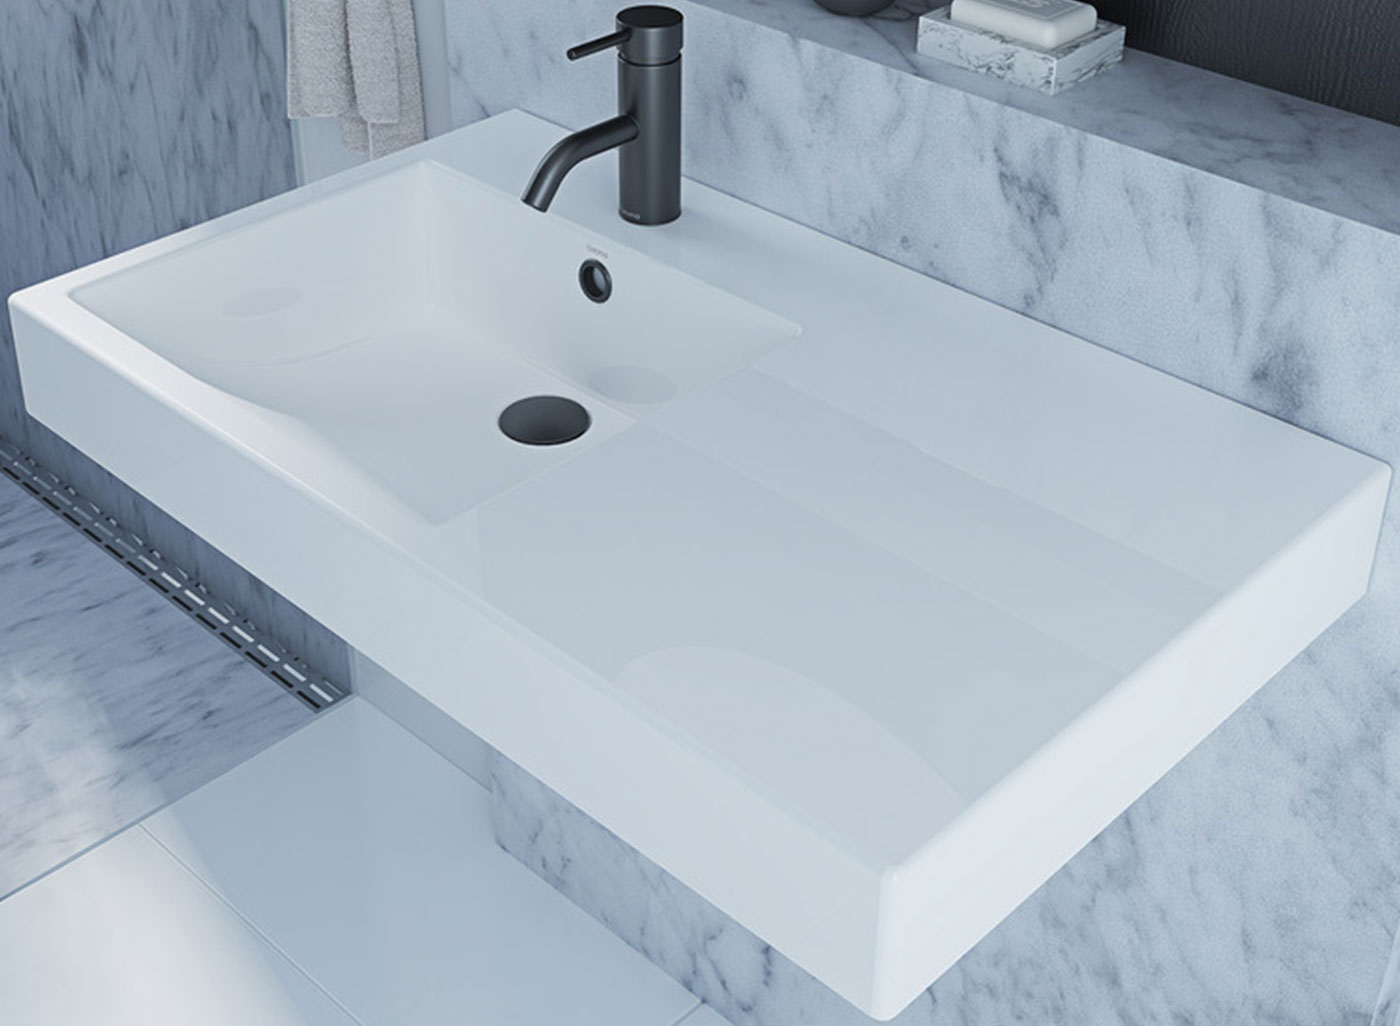 the Liano Nexus basin range is available in multiple configurations and compliments a contemporary bathroom.